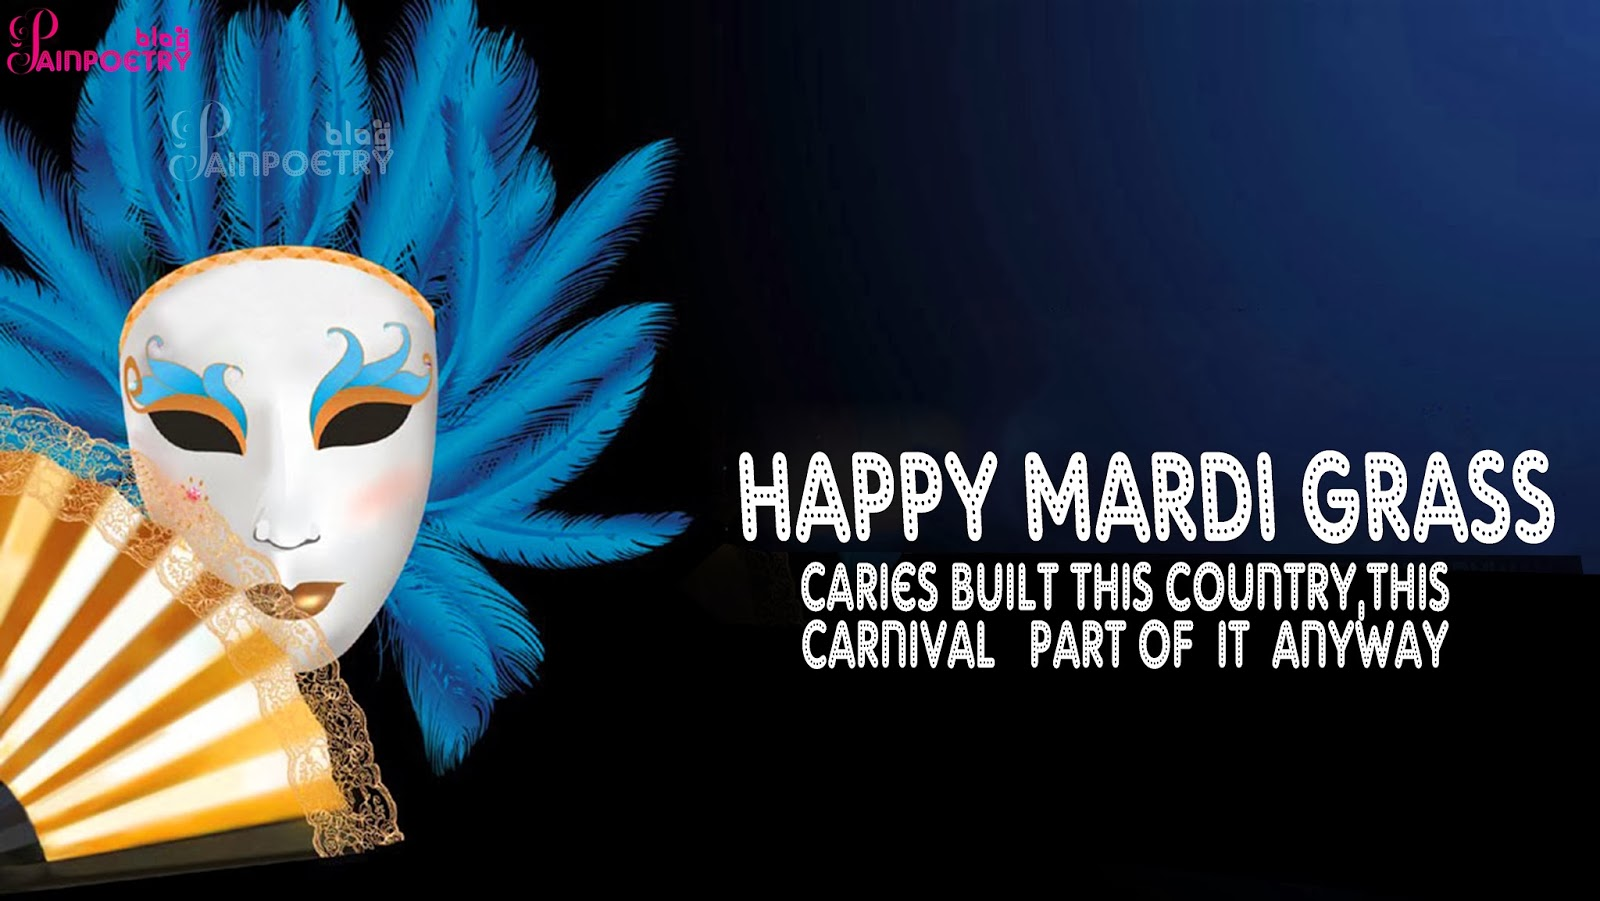 Happy-Mardi-Gras-Wishes-Image-eCard-Wallpaper-Photo-Venetian-Carnival-Mask-Wide-HD